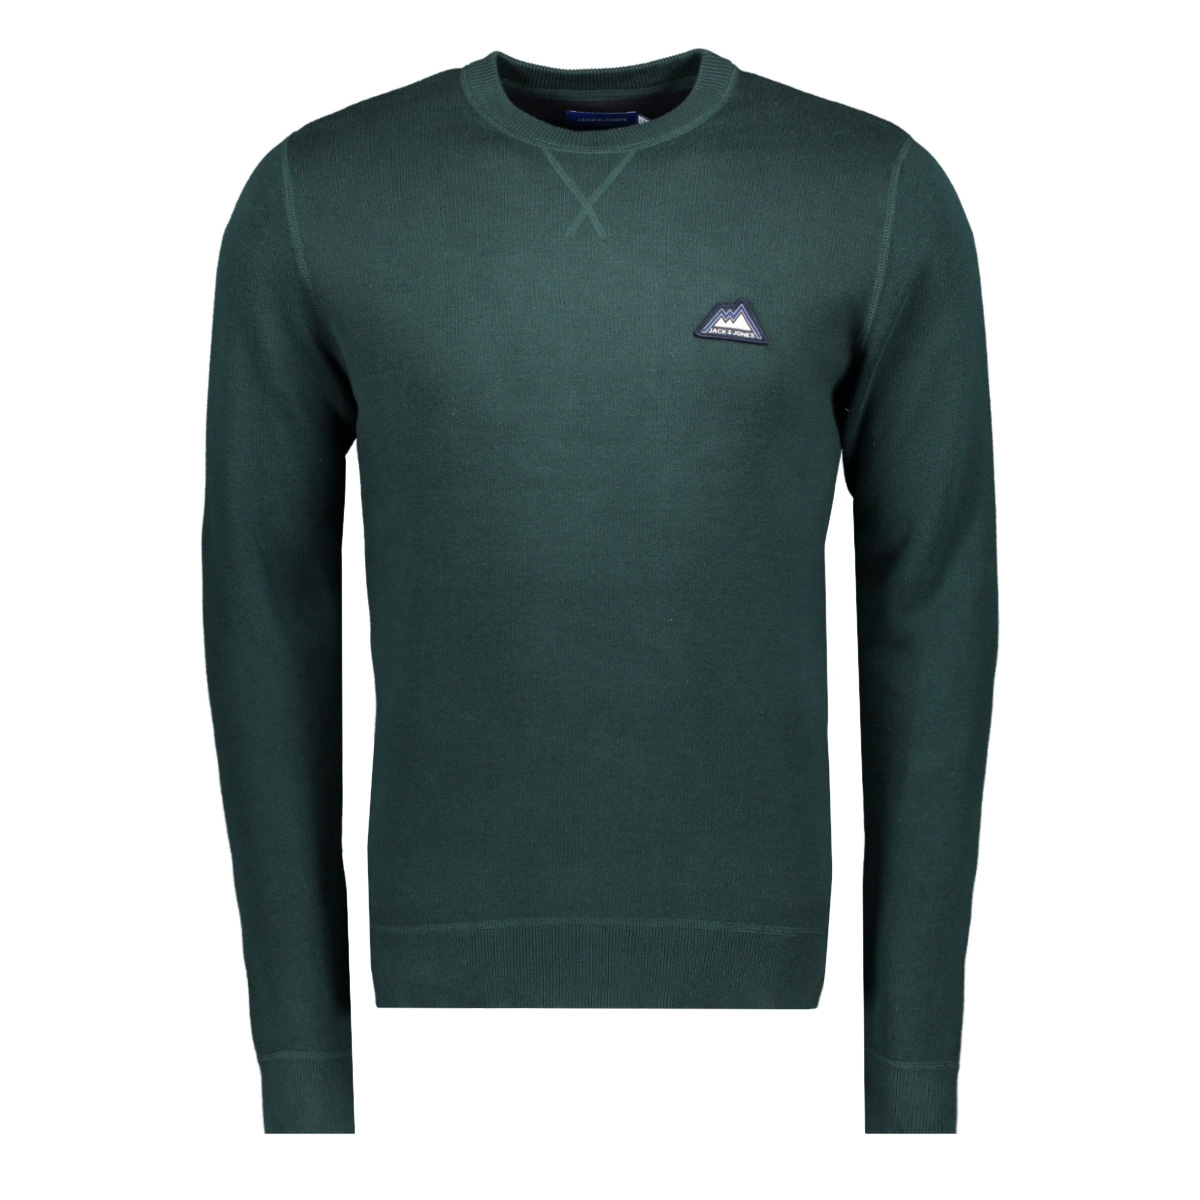 jordouble knit crew neck 12162615 jack & jones trui sea moss/knit fit